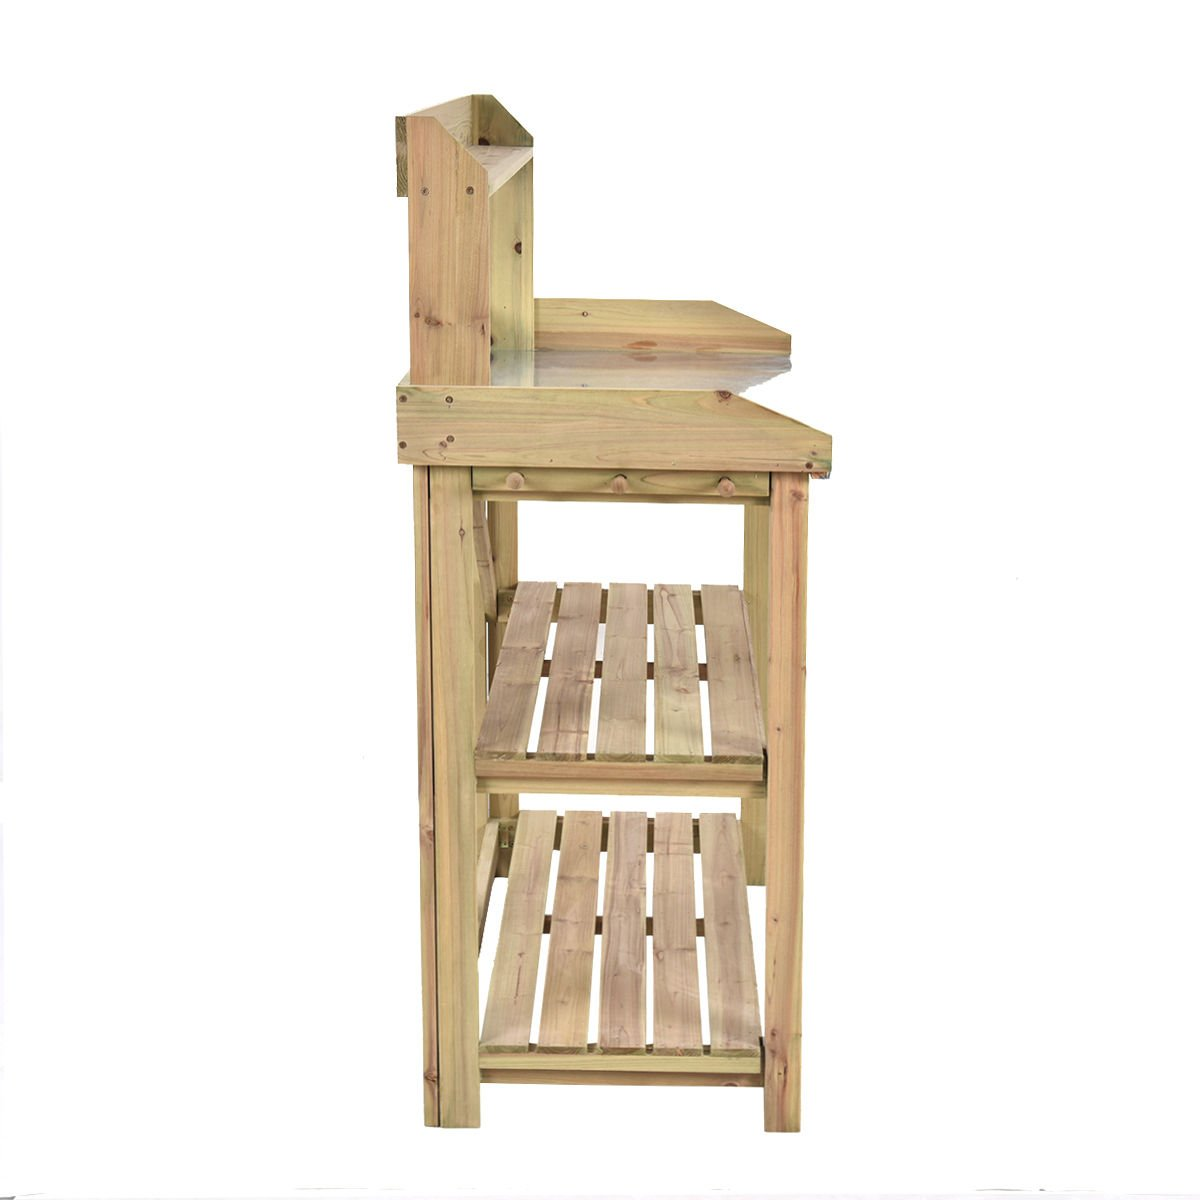 Bench Station Planting Workbench 3 Shelf Garden Wooden Potting Work Suitable for your gardening.